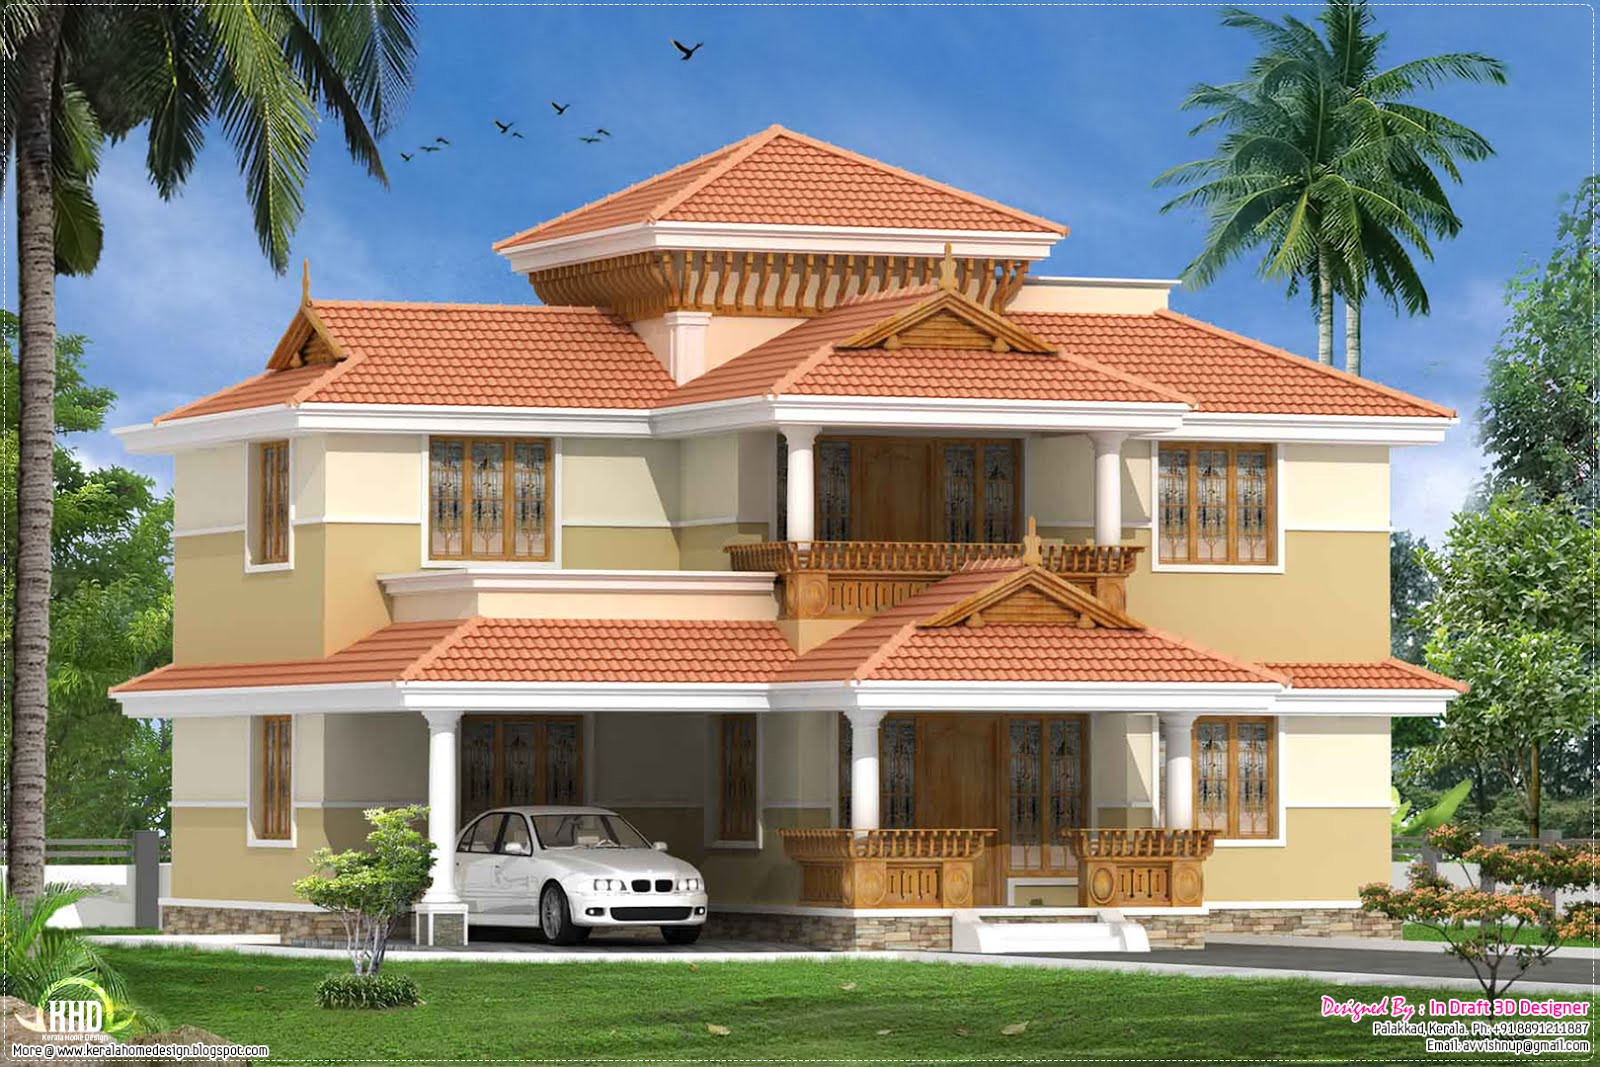 Home interior perfly home design kerala style for Home designs kerala style